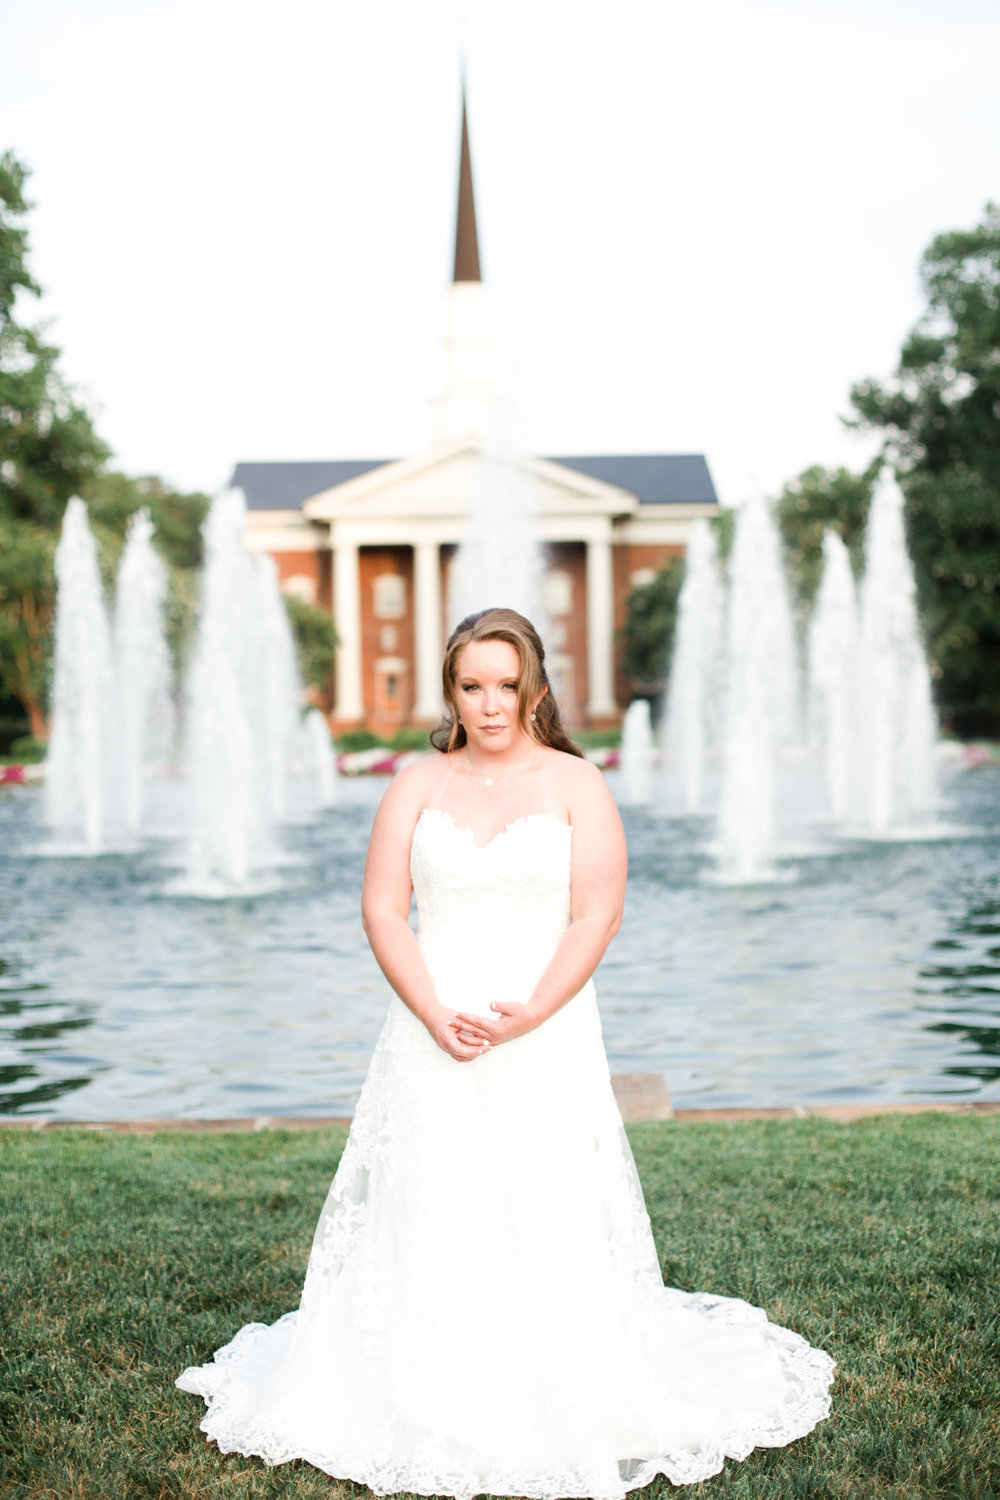 gabbie_bridal_poured_out_photography-80.jpg